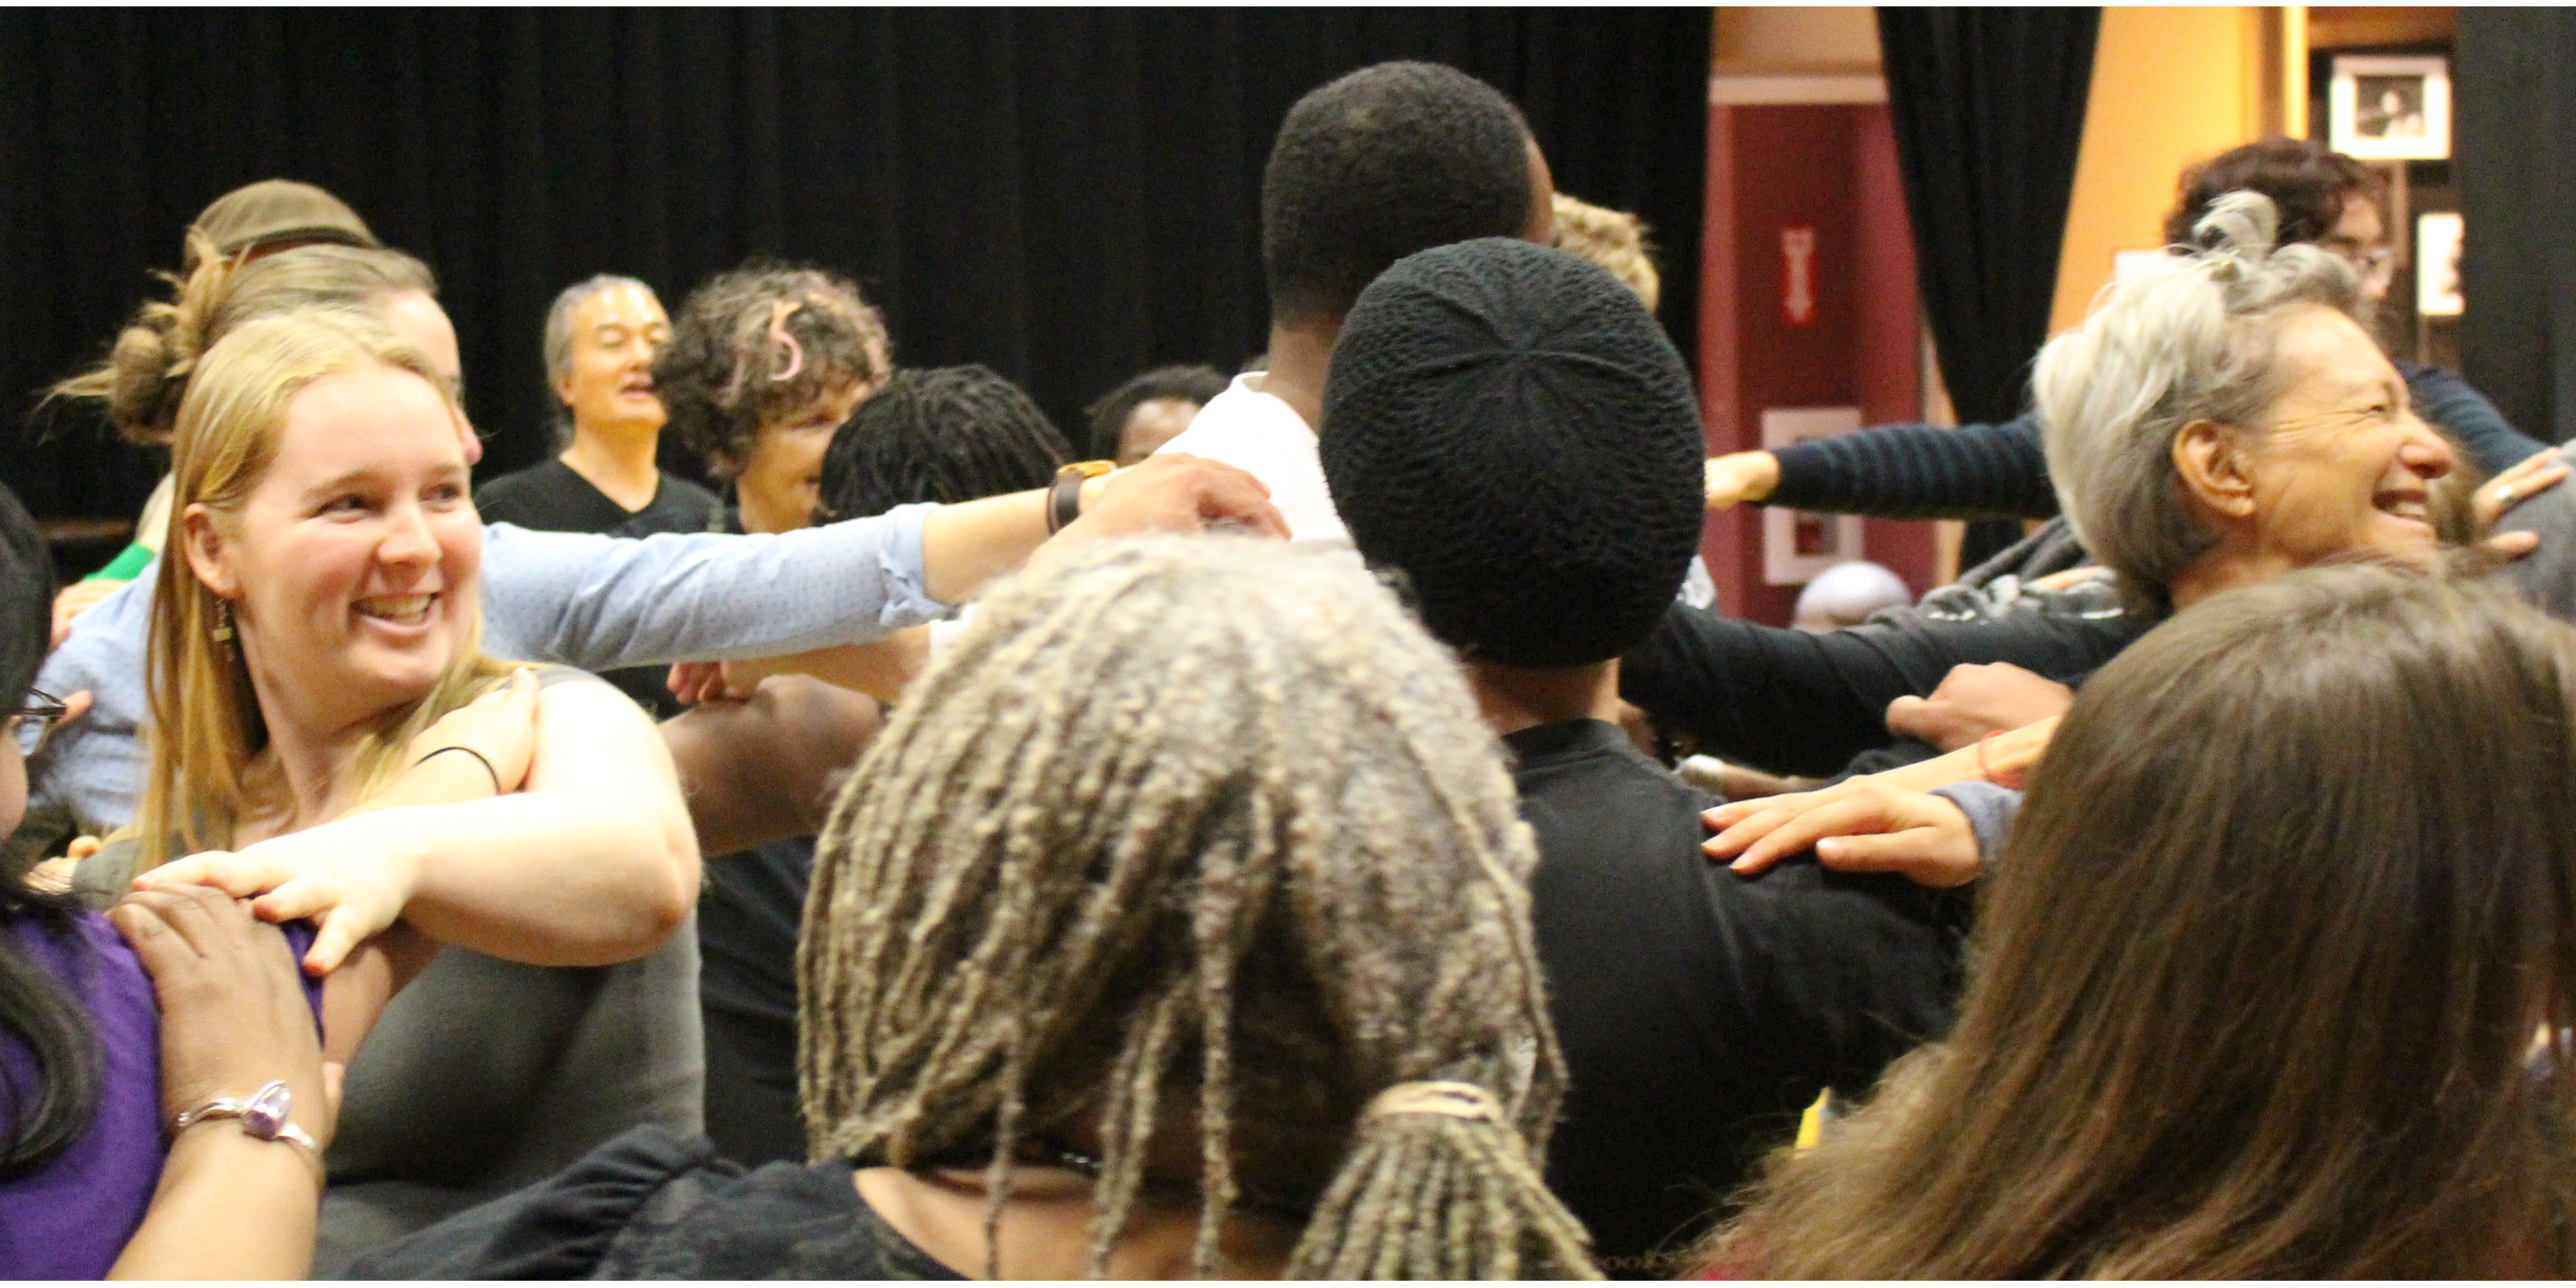 Jiwon Chung leads a Theatre of the Oppressed workshop